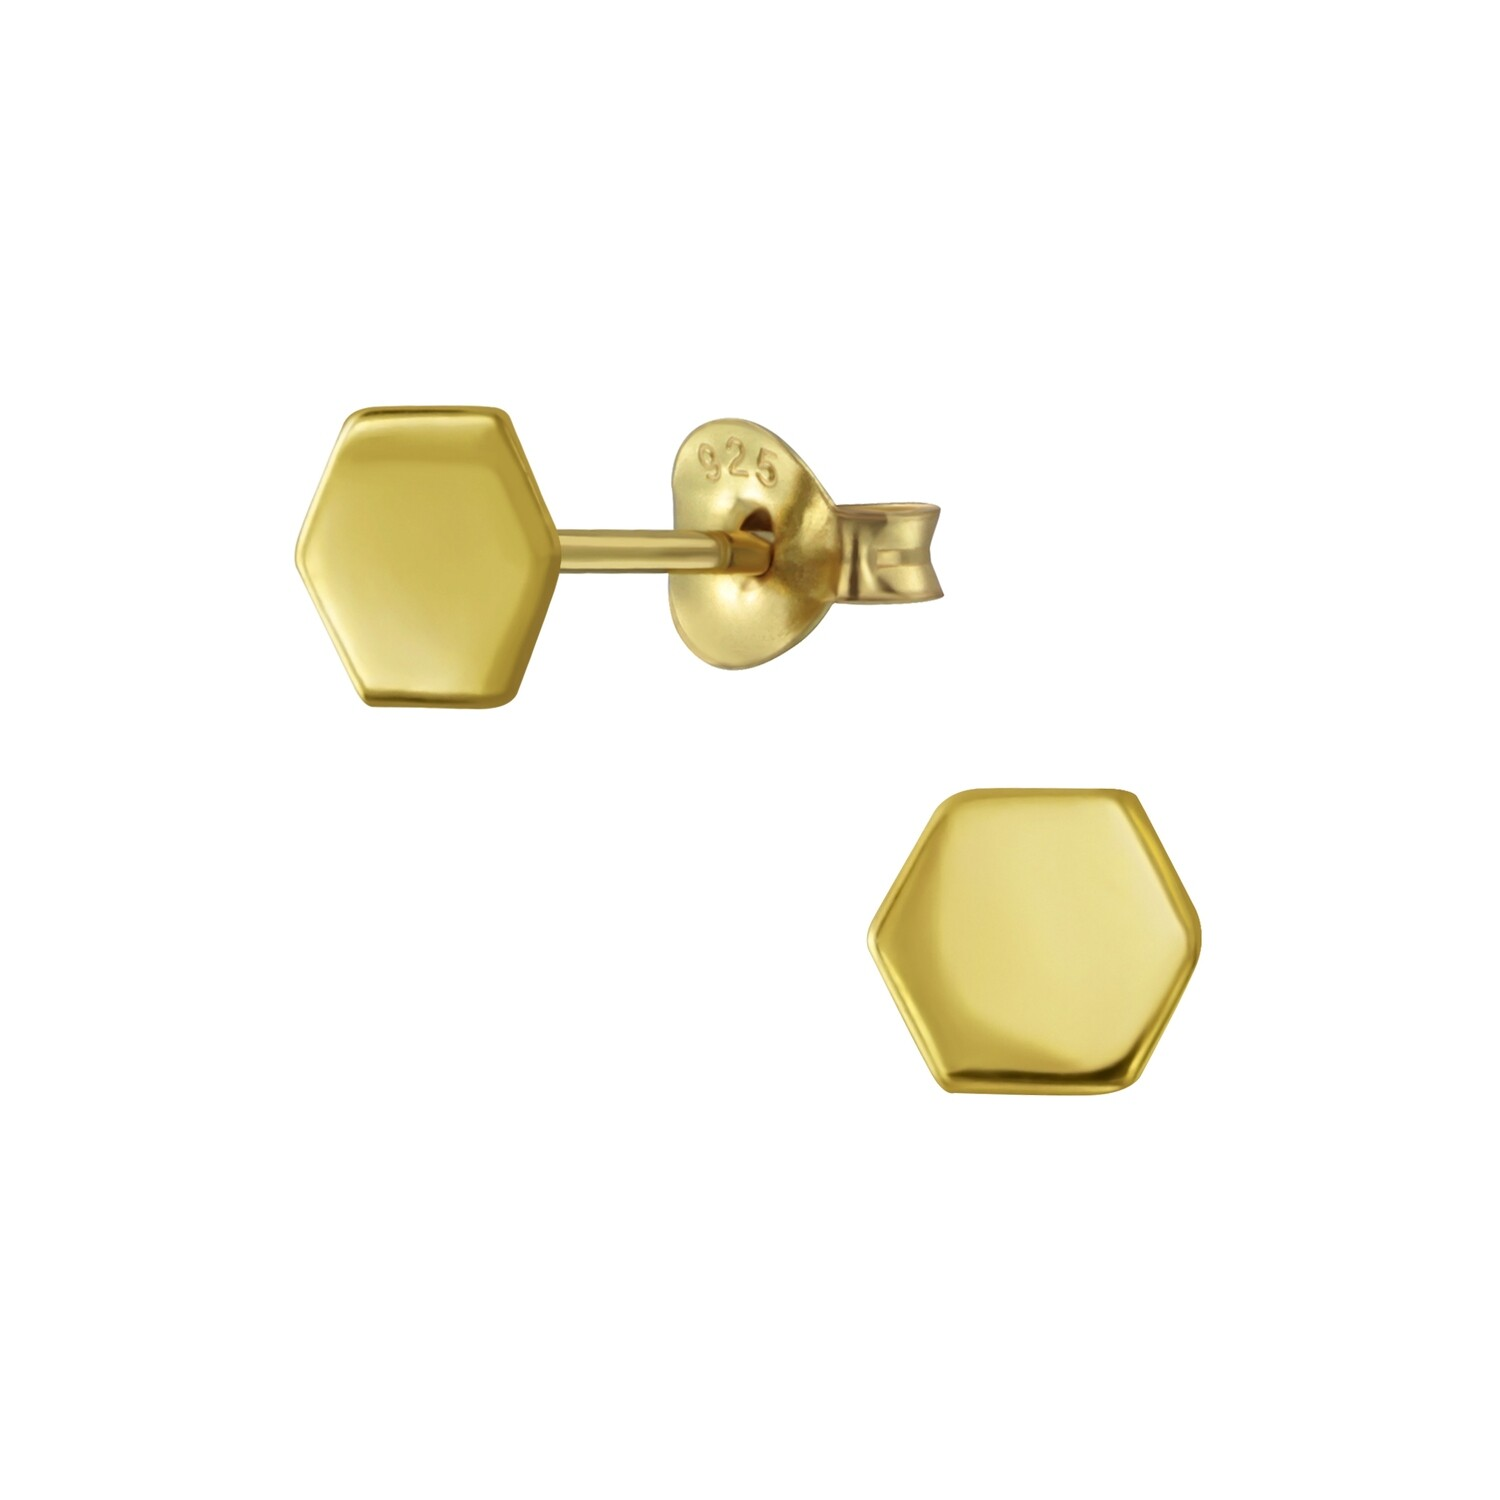 Solid Hexagon Posts - Gold Plated Sterling Silver - P60-5